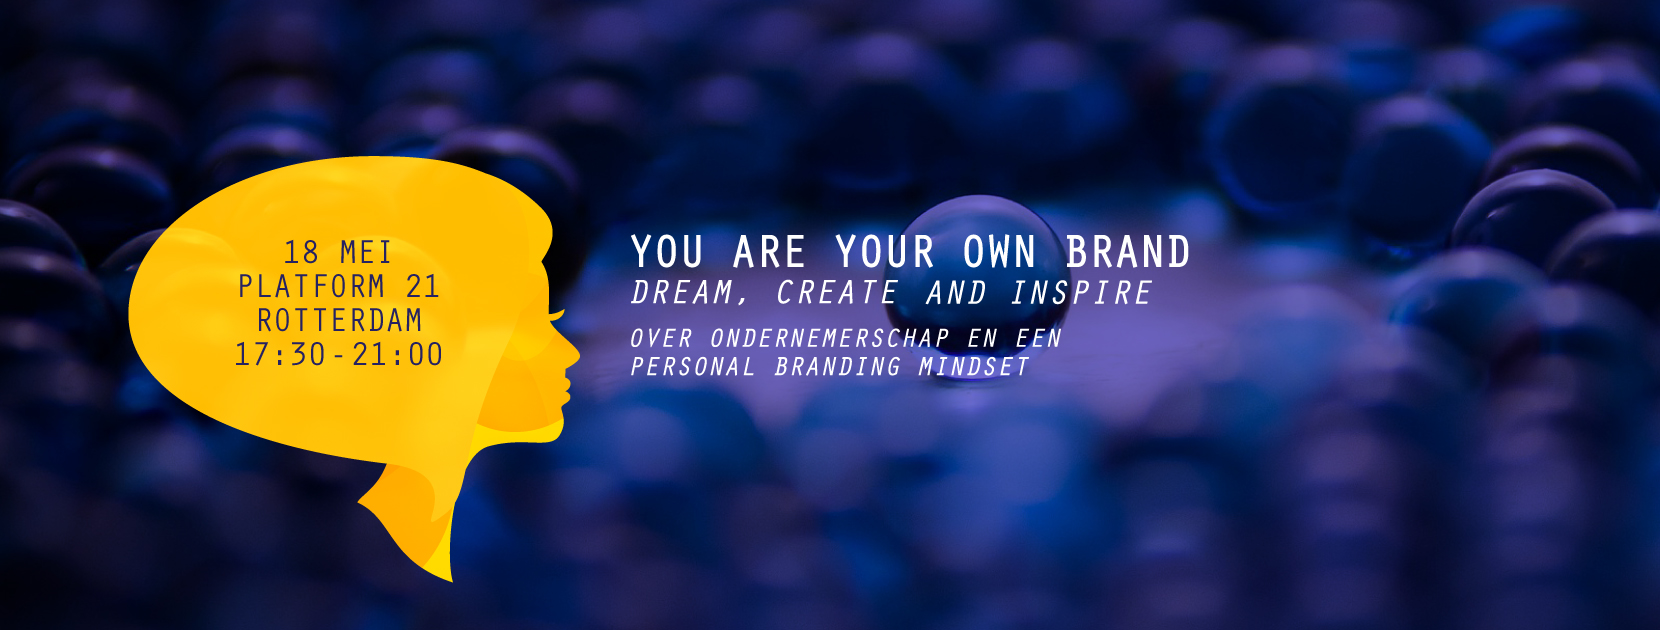 EZVN-You are your own brand